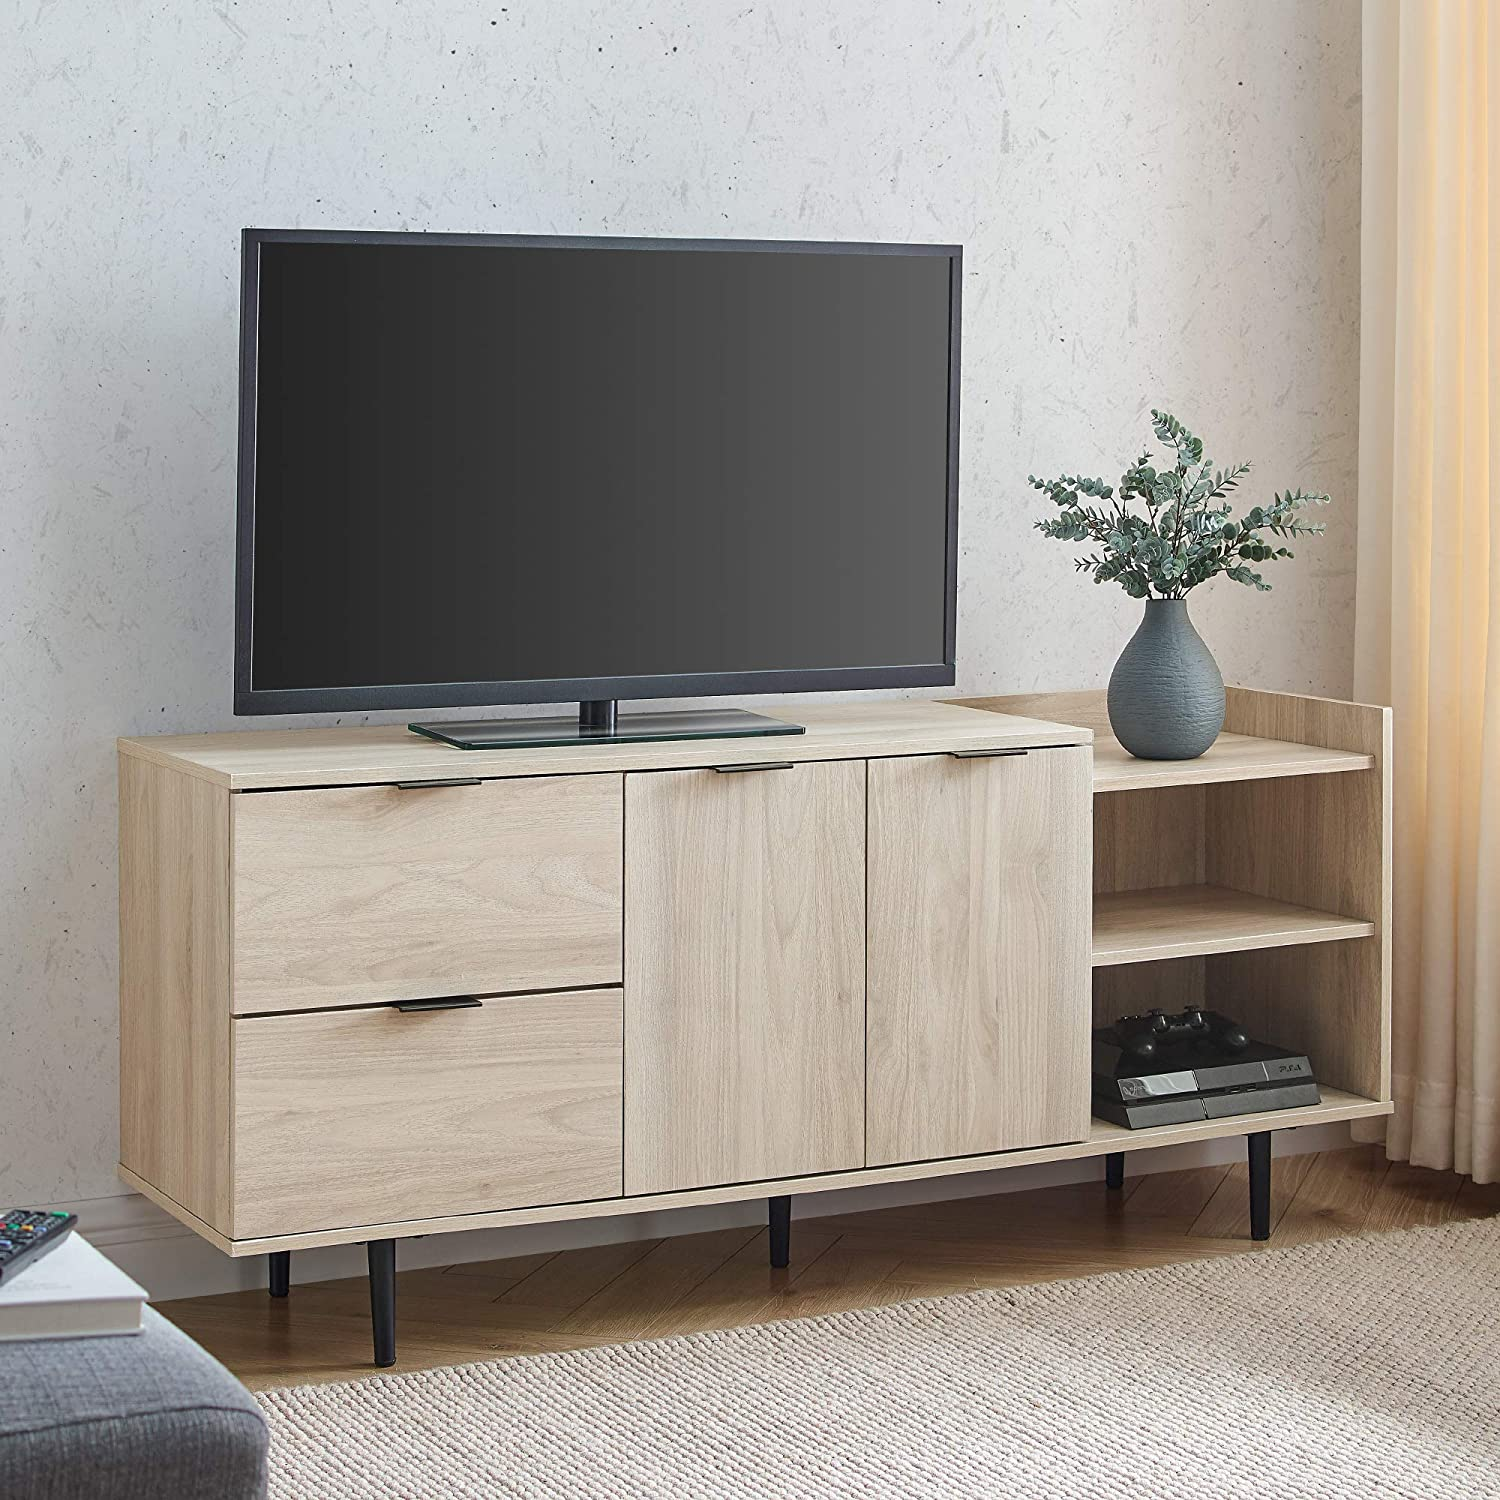 Walker safety Edison Columbia Modern Storage Stand up 65 TVs for Inc New arrival to